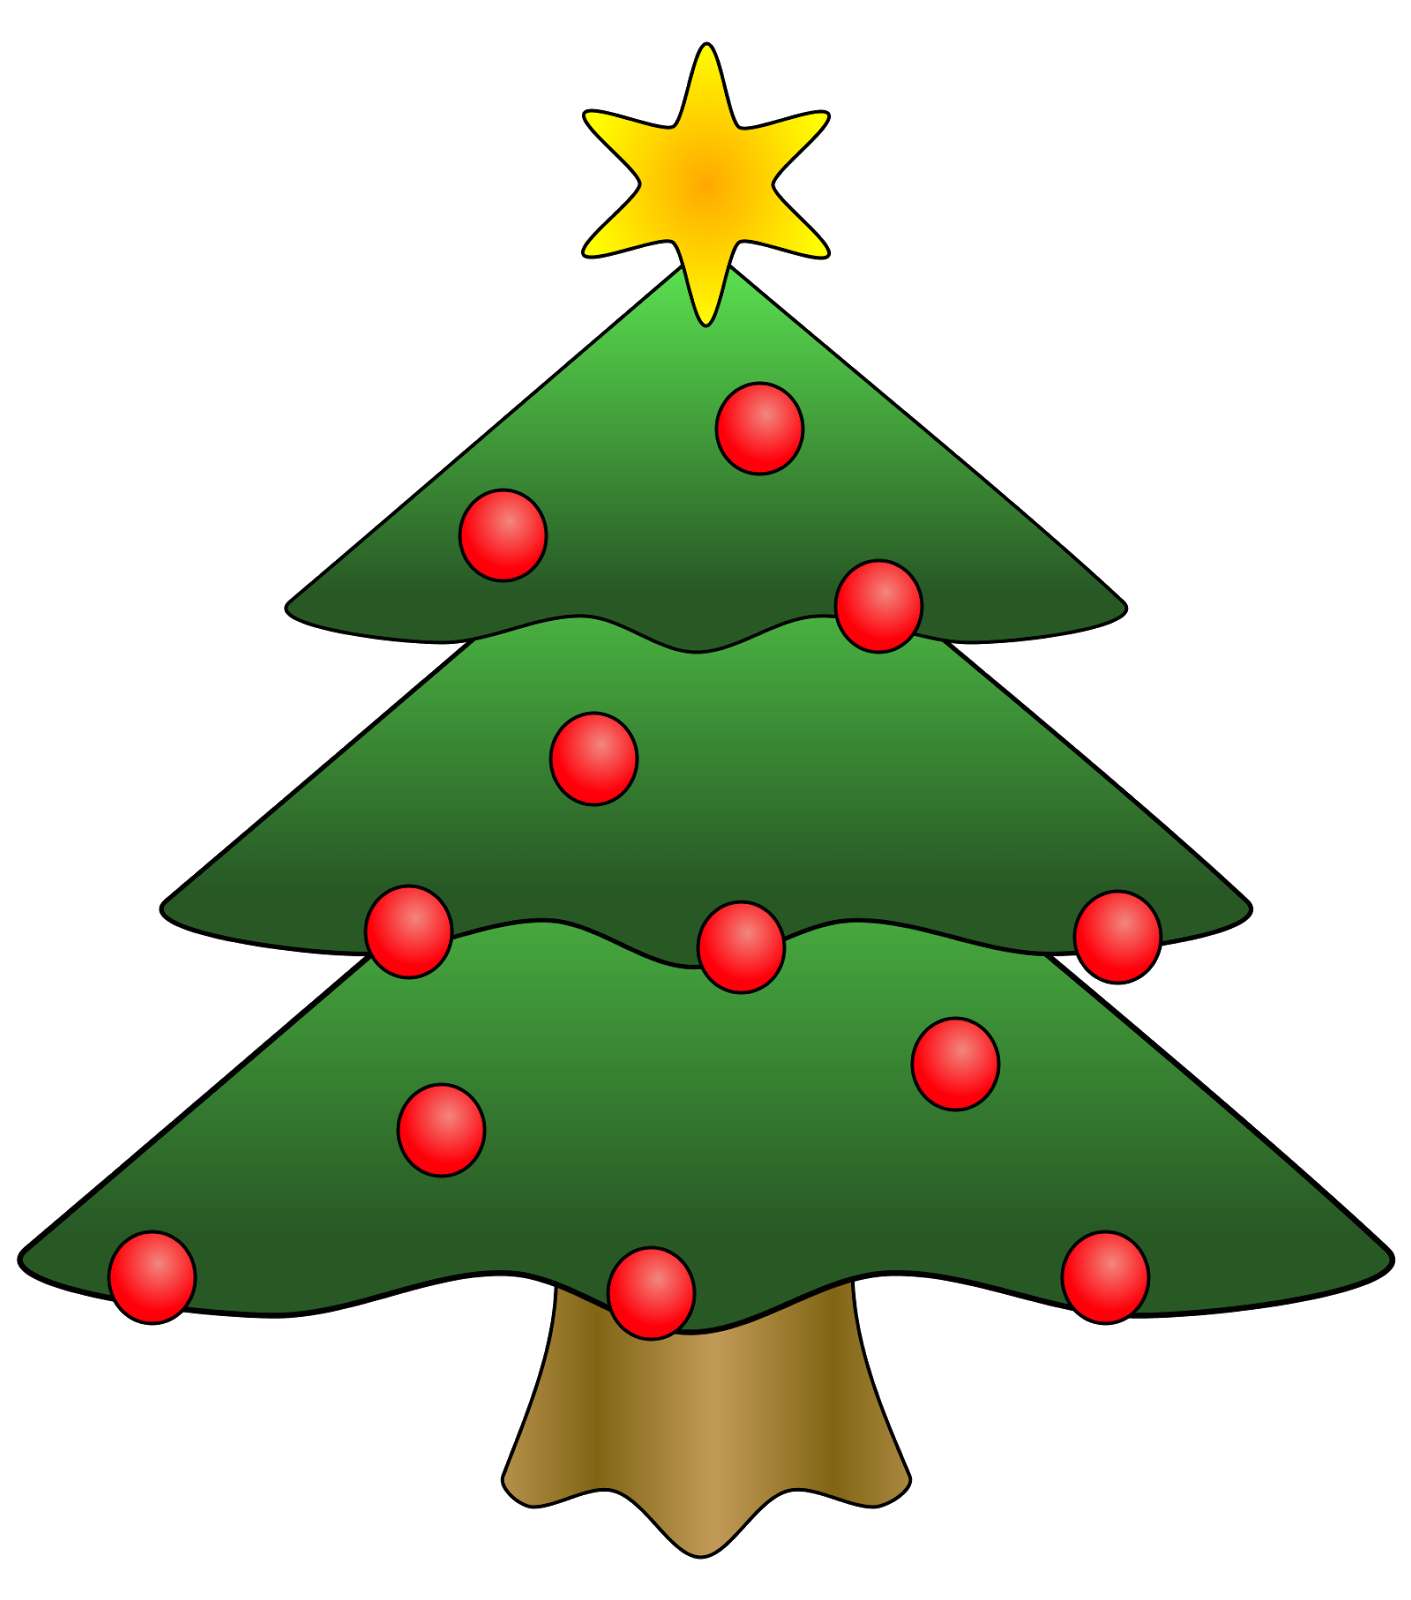 Pine Tree Outline Clipart | Clipart Panda - Free Clipart Images